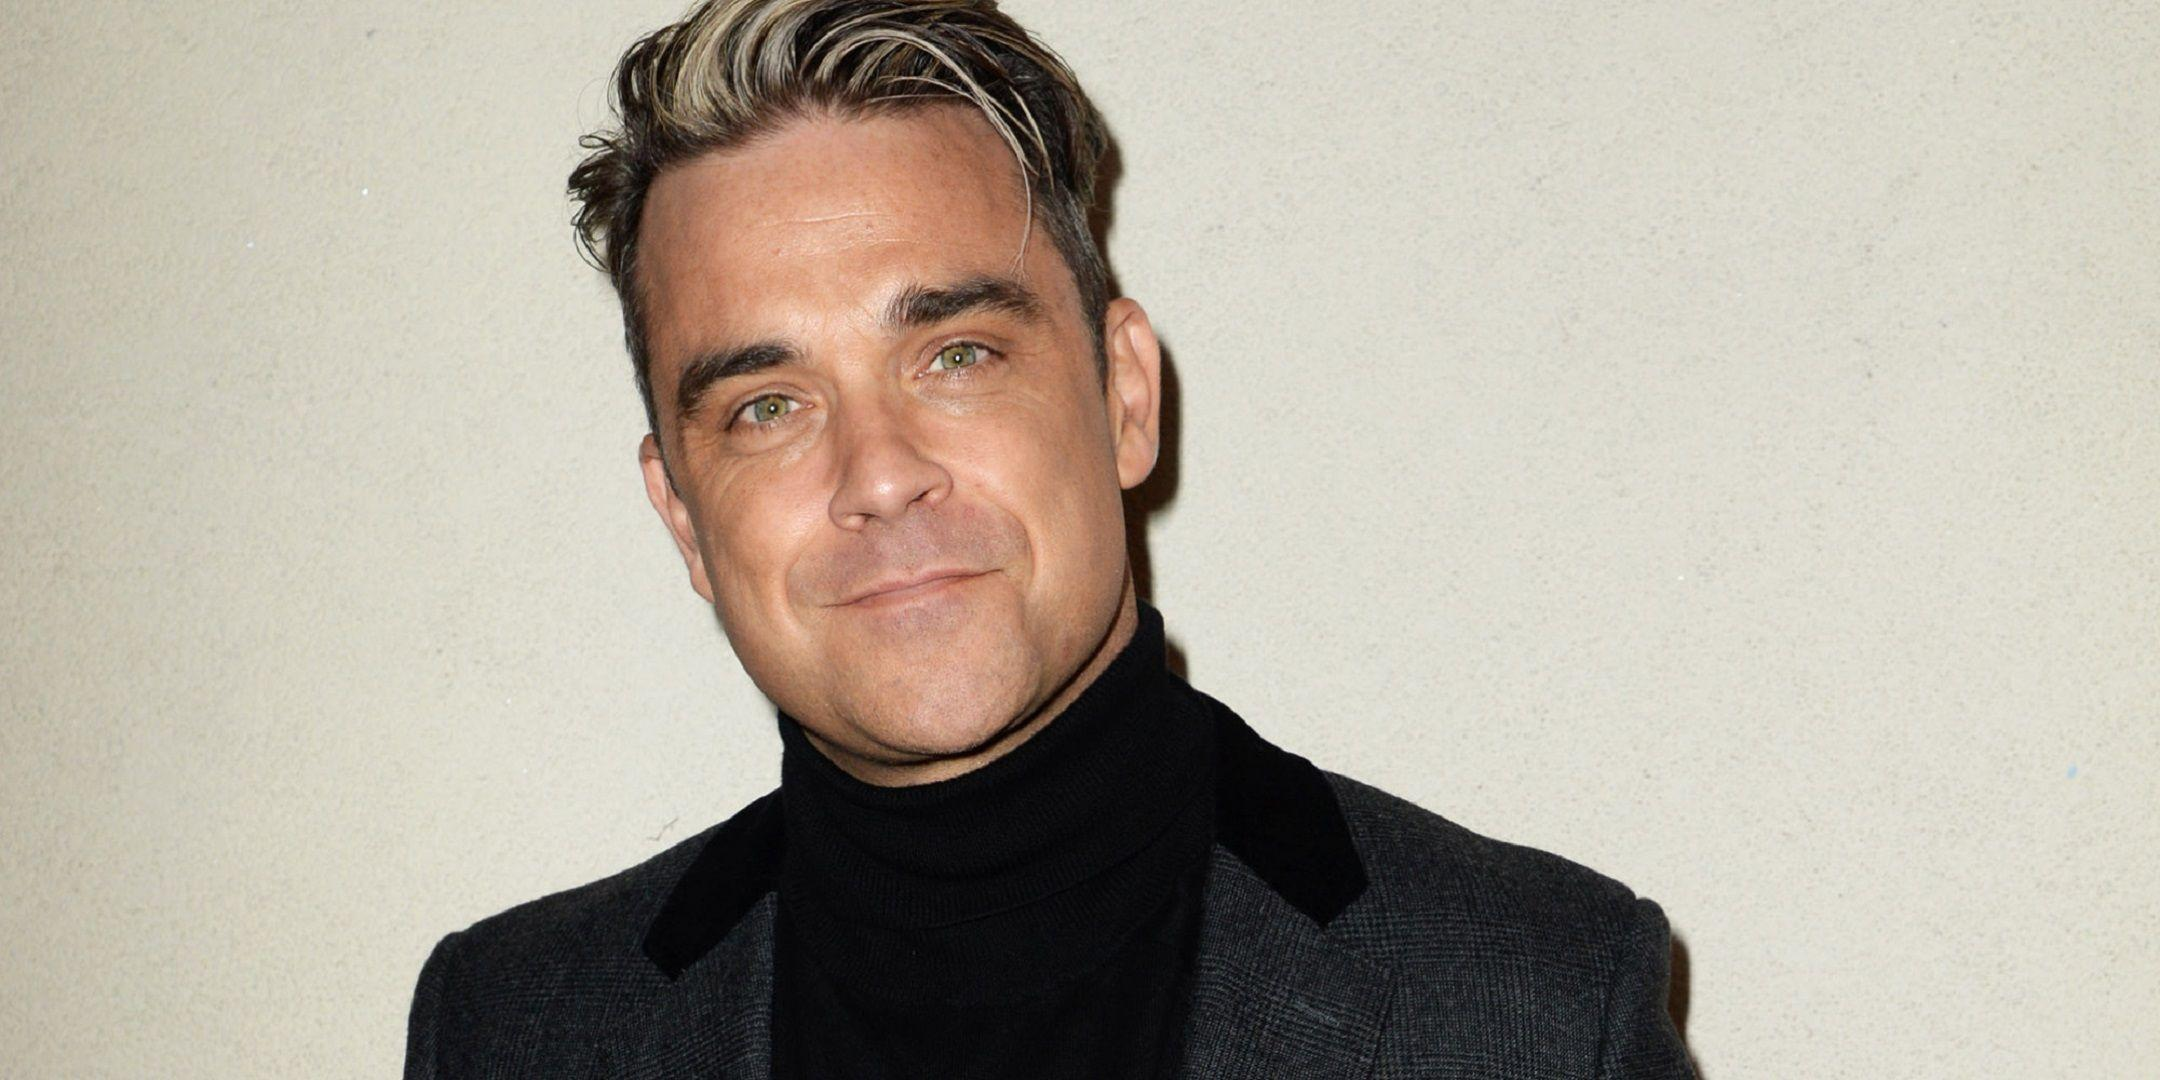 Robbie Williams Wallpapers Image Photos Pictures Backgrounds